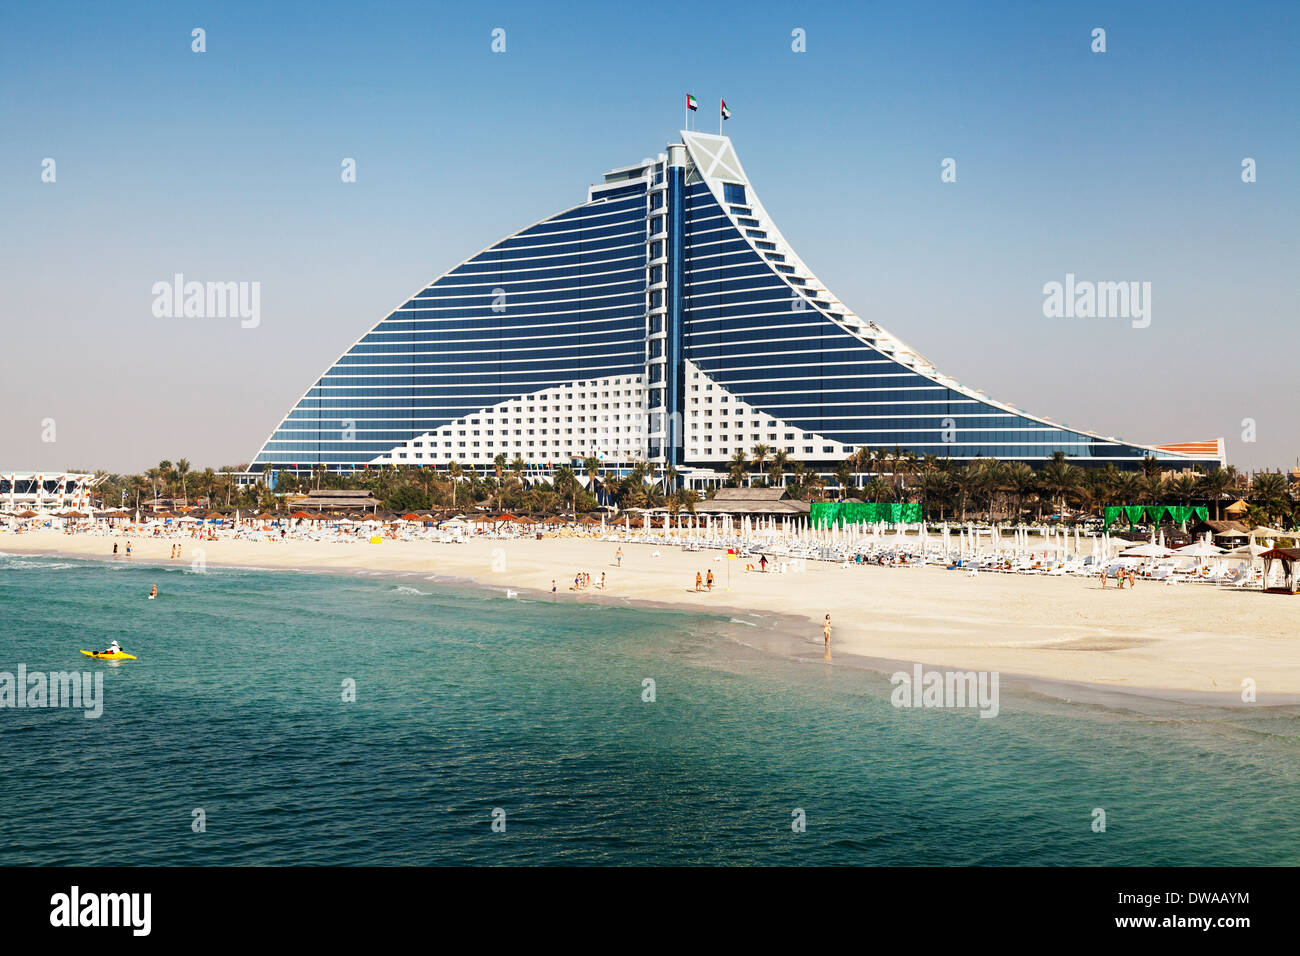 Dubai hotel 7 star browse info on dubai hotel 7 star for Top 10 5 star hotels in dubai